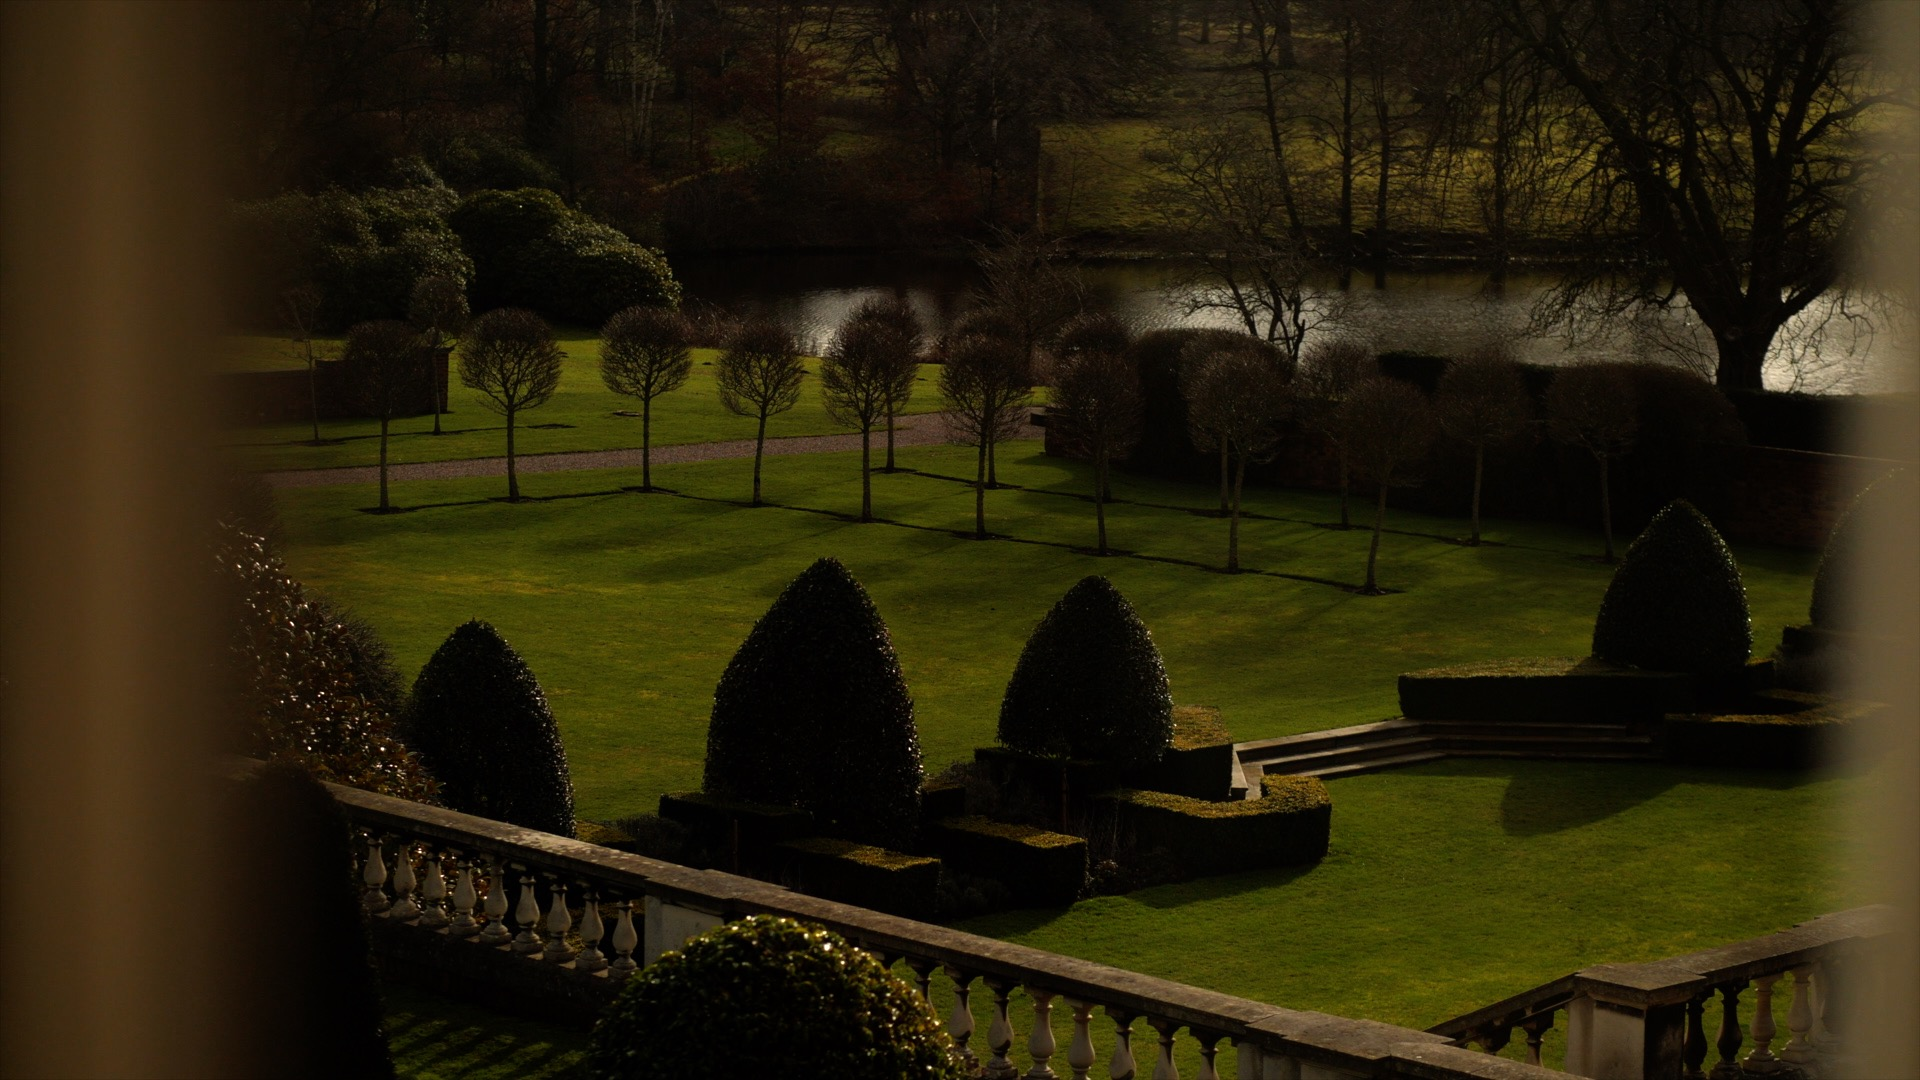 The stunning grounds of Knowsley Hall, showing the trees, garden and lake, which are all beautifully kept. The view from Jen's bridal suite, which is absolutely mesmerising.